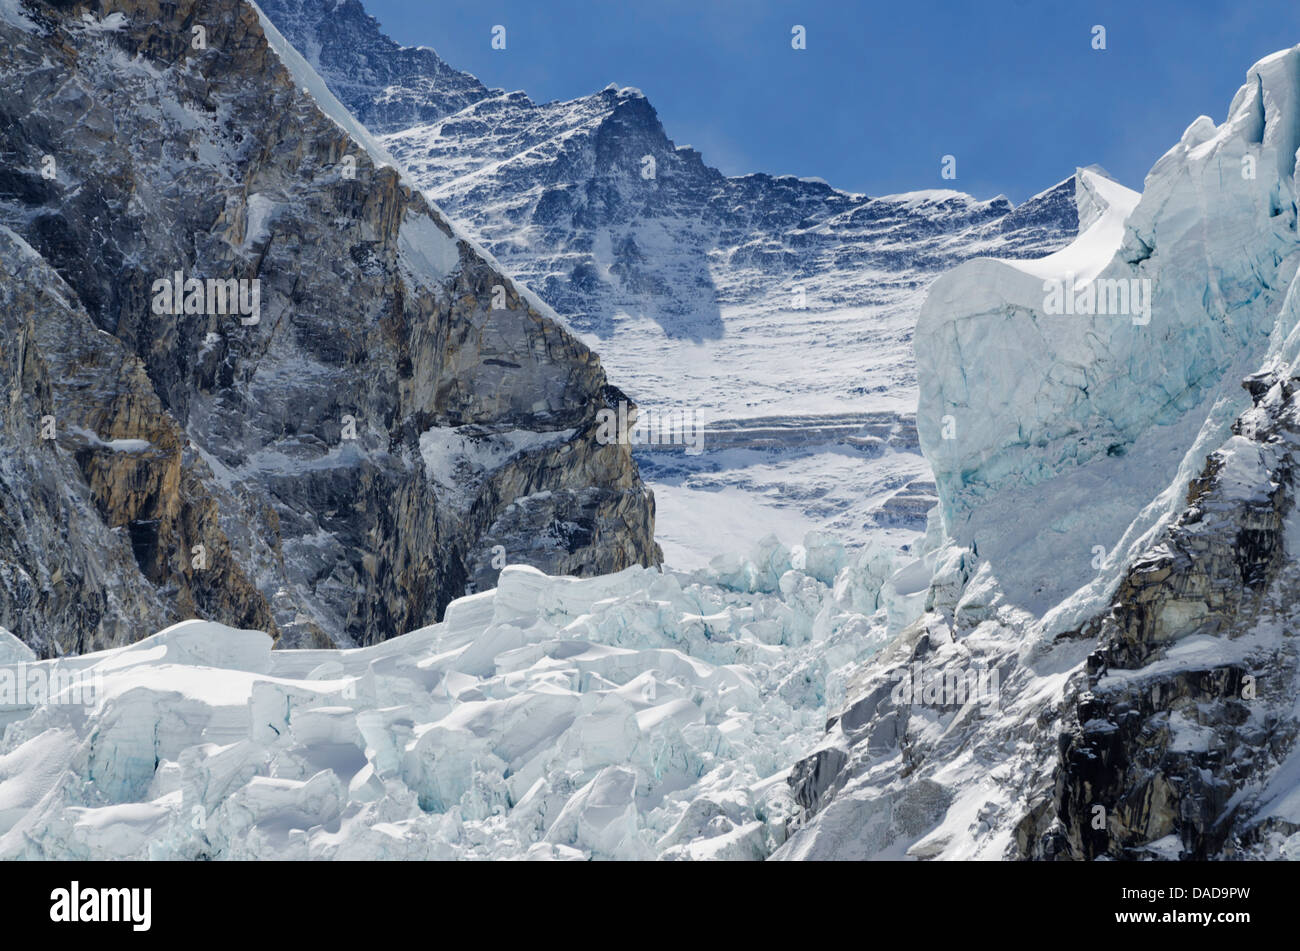 The Khumbu icefall on Mount Everest, Solu Khumbu Everest Region, Sagarmatha National Park, UNESCO Site, Nepal - Stock Image